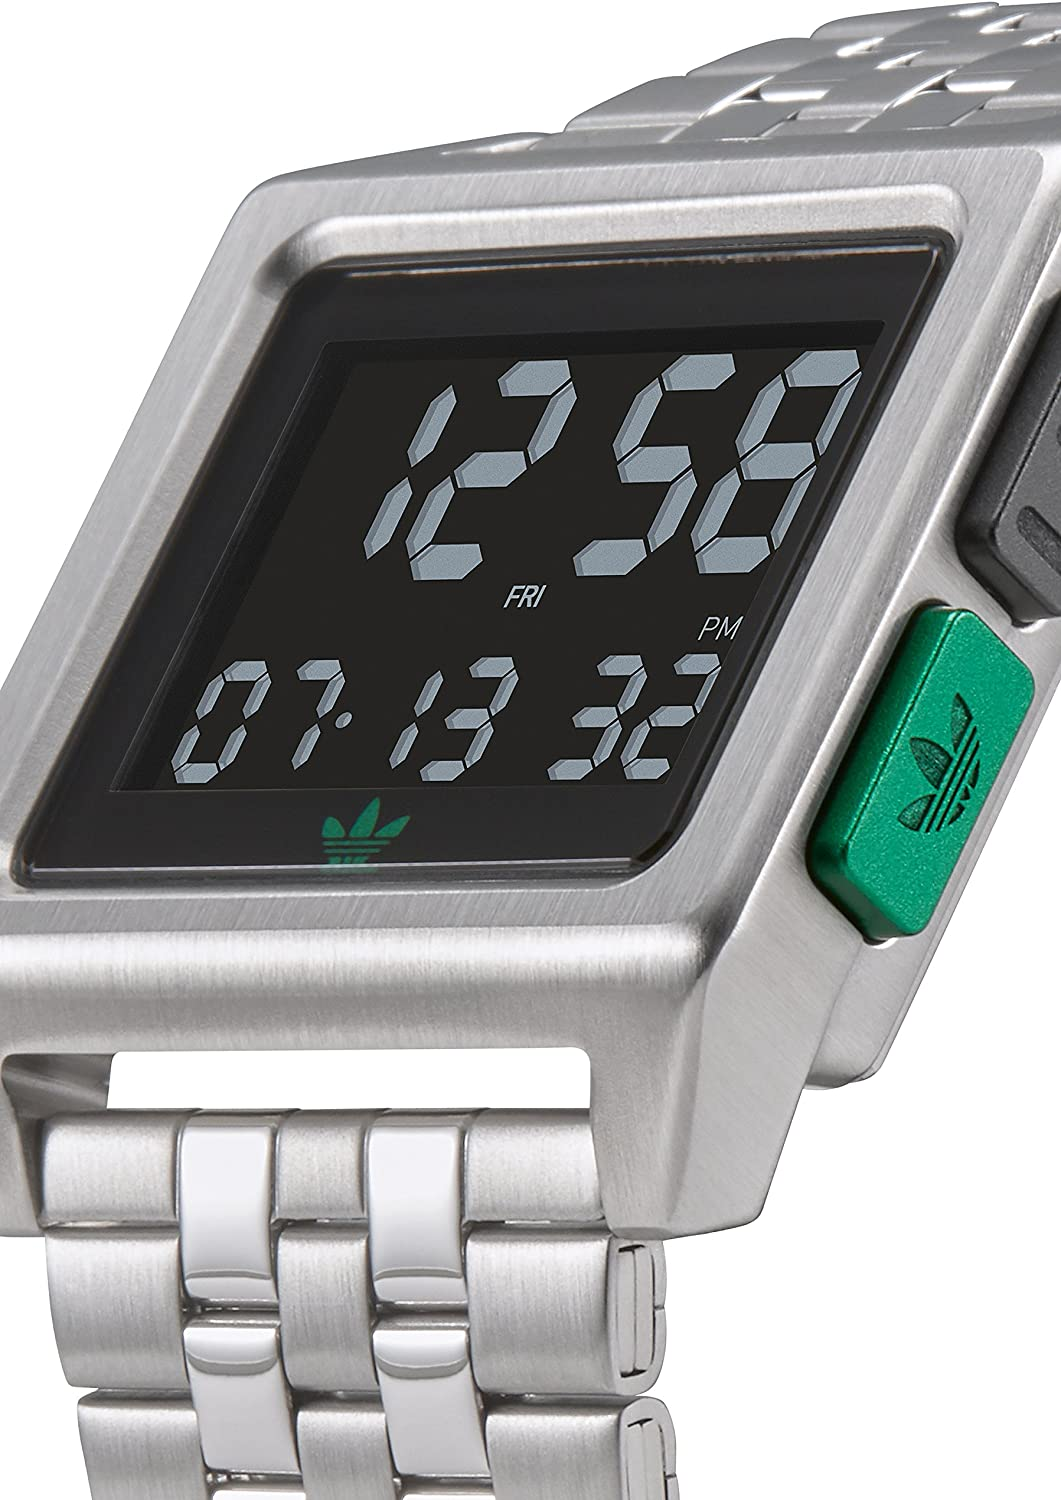 Adidas Watches Archive_M1. Men's 70's Style Stainless Steel Digital Watch with 5 Link Bracelet (36 mm). Silver/Black/Green